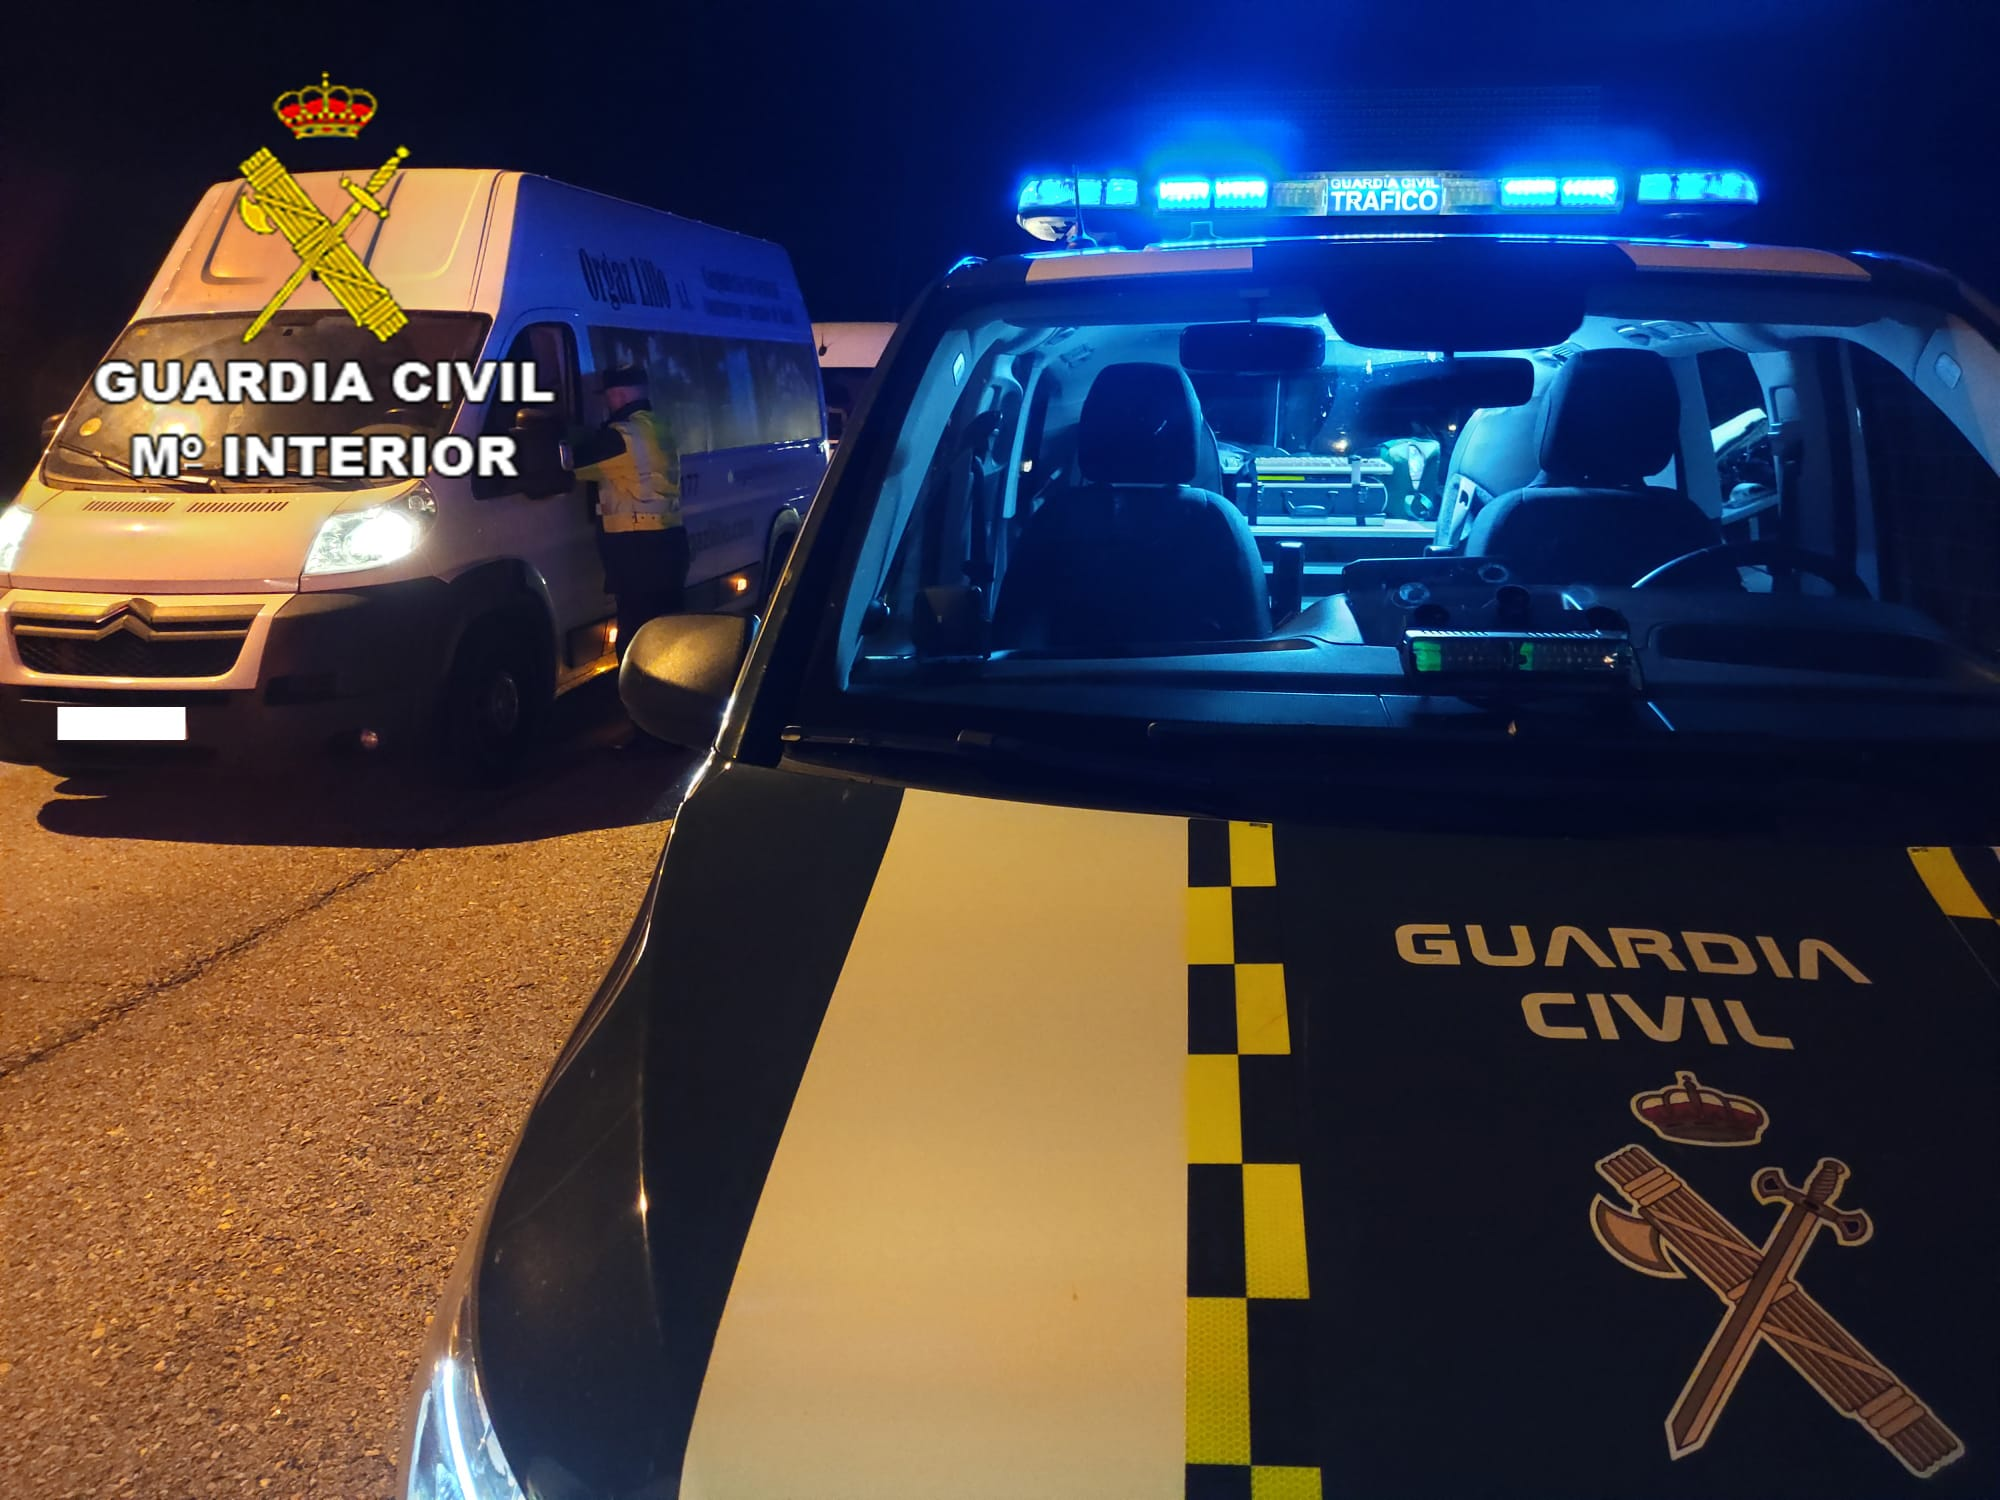 Control de la Guardia Civil de Tráfico.